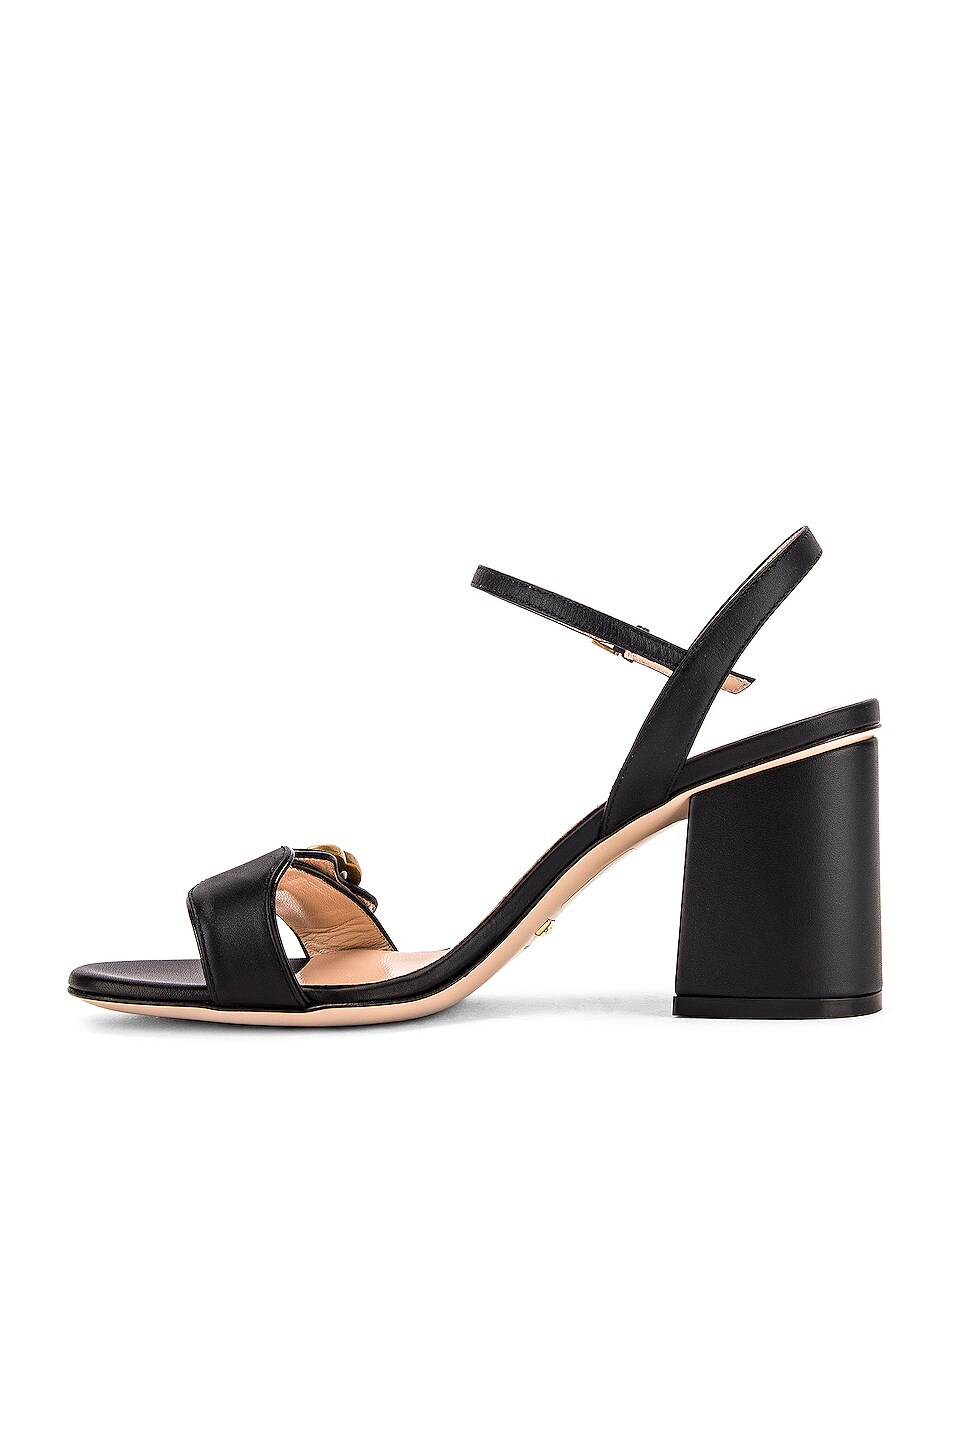 Image 5 of Gucci Leather Mid Heel Sandals in Black